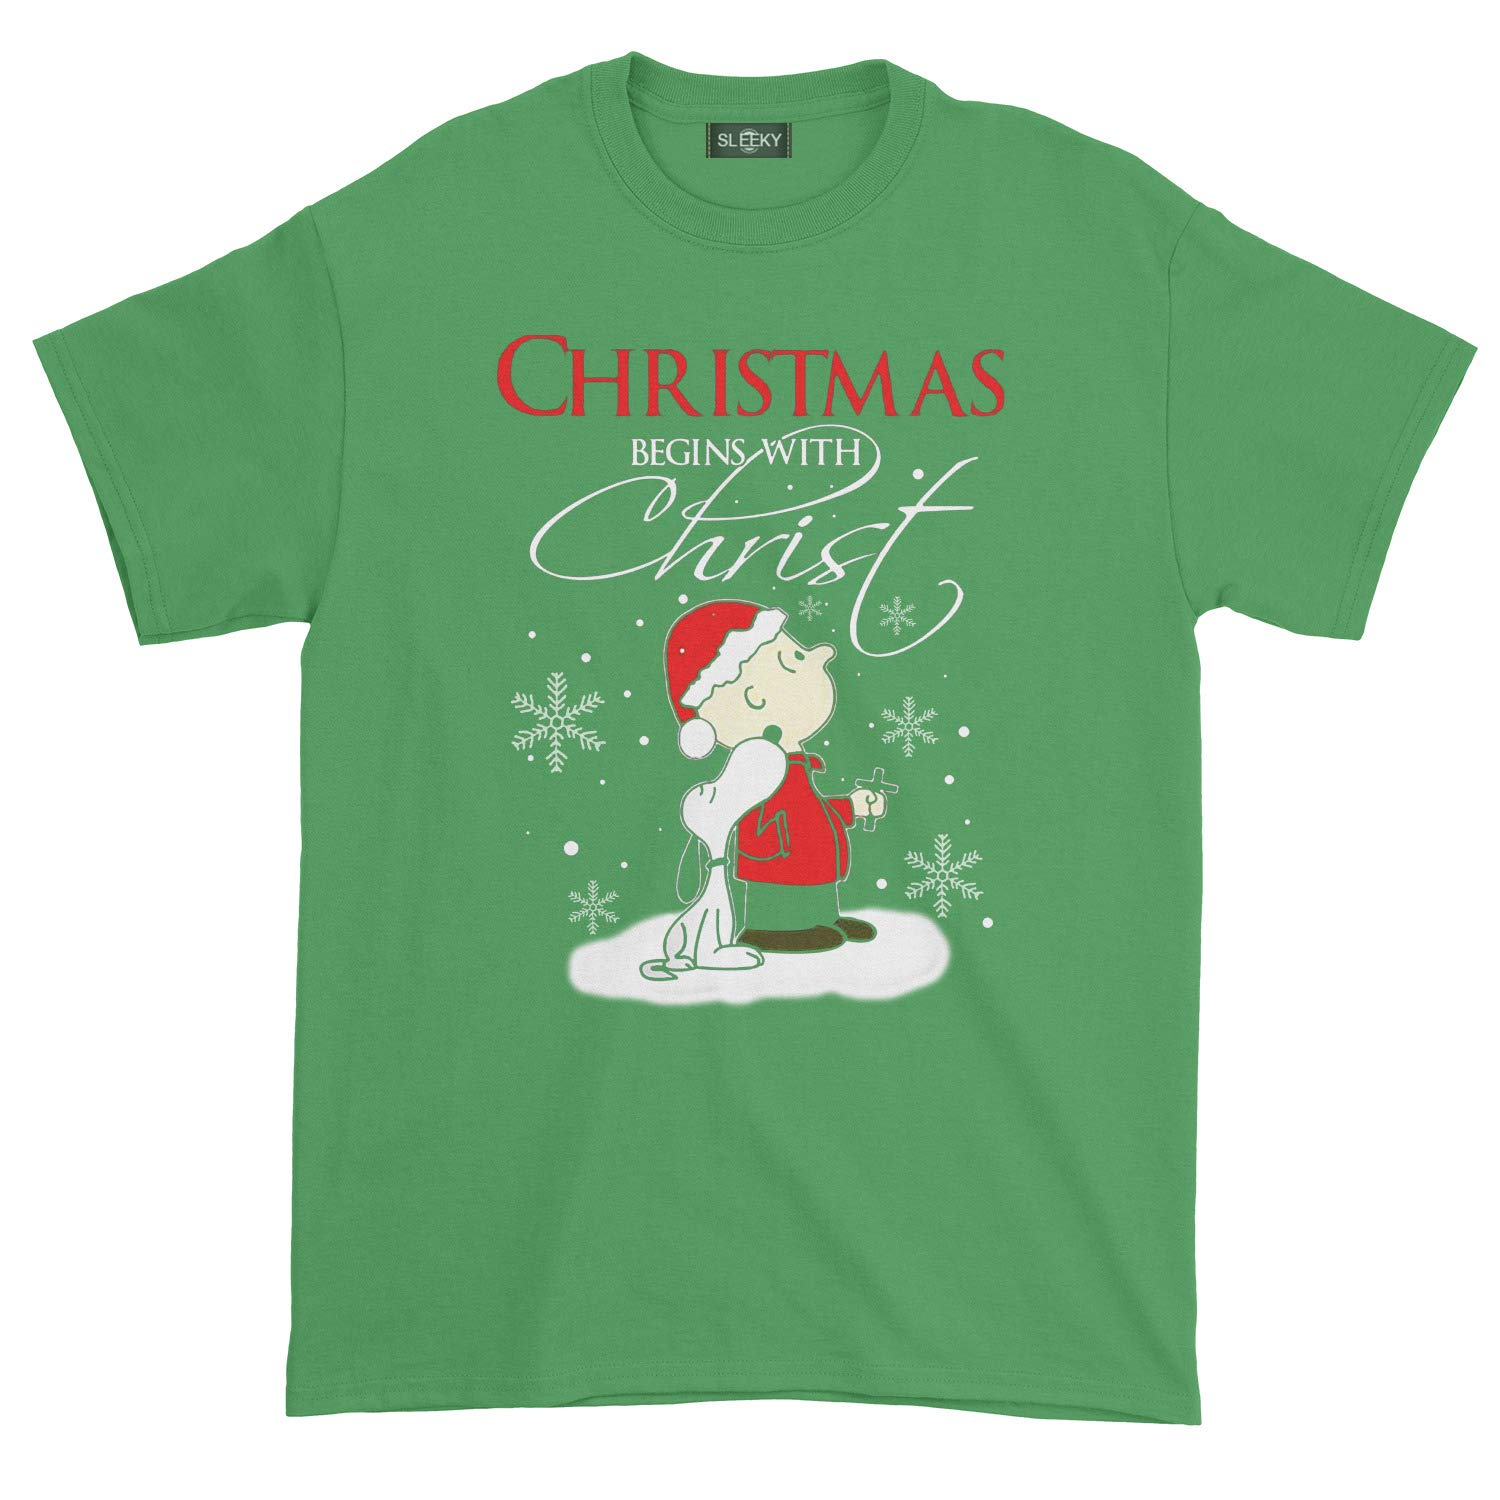 Christmas Begins with Christ Charlie Brown and Snoopy T Shirt